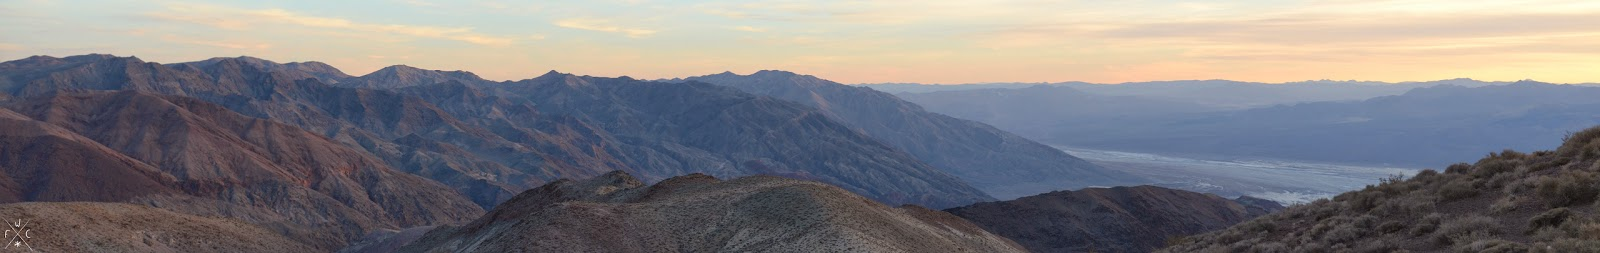 Dante's view, Death Valley National Park, Californie, USA